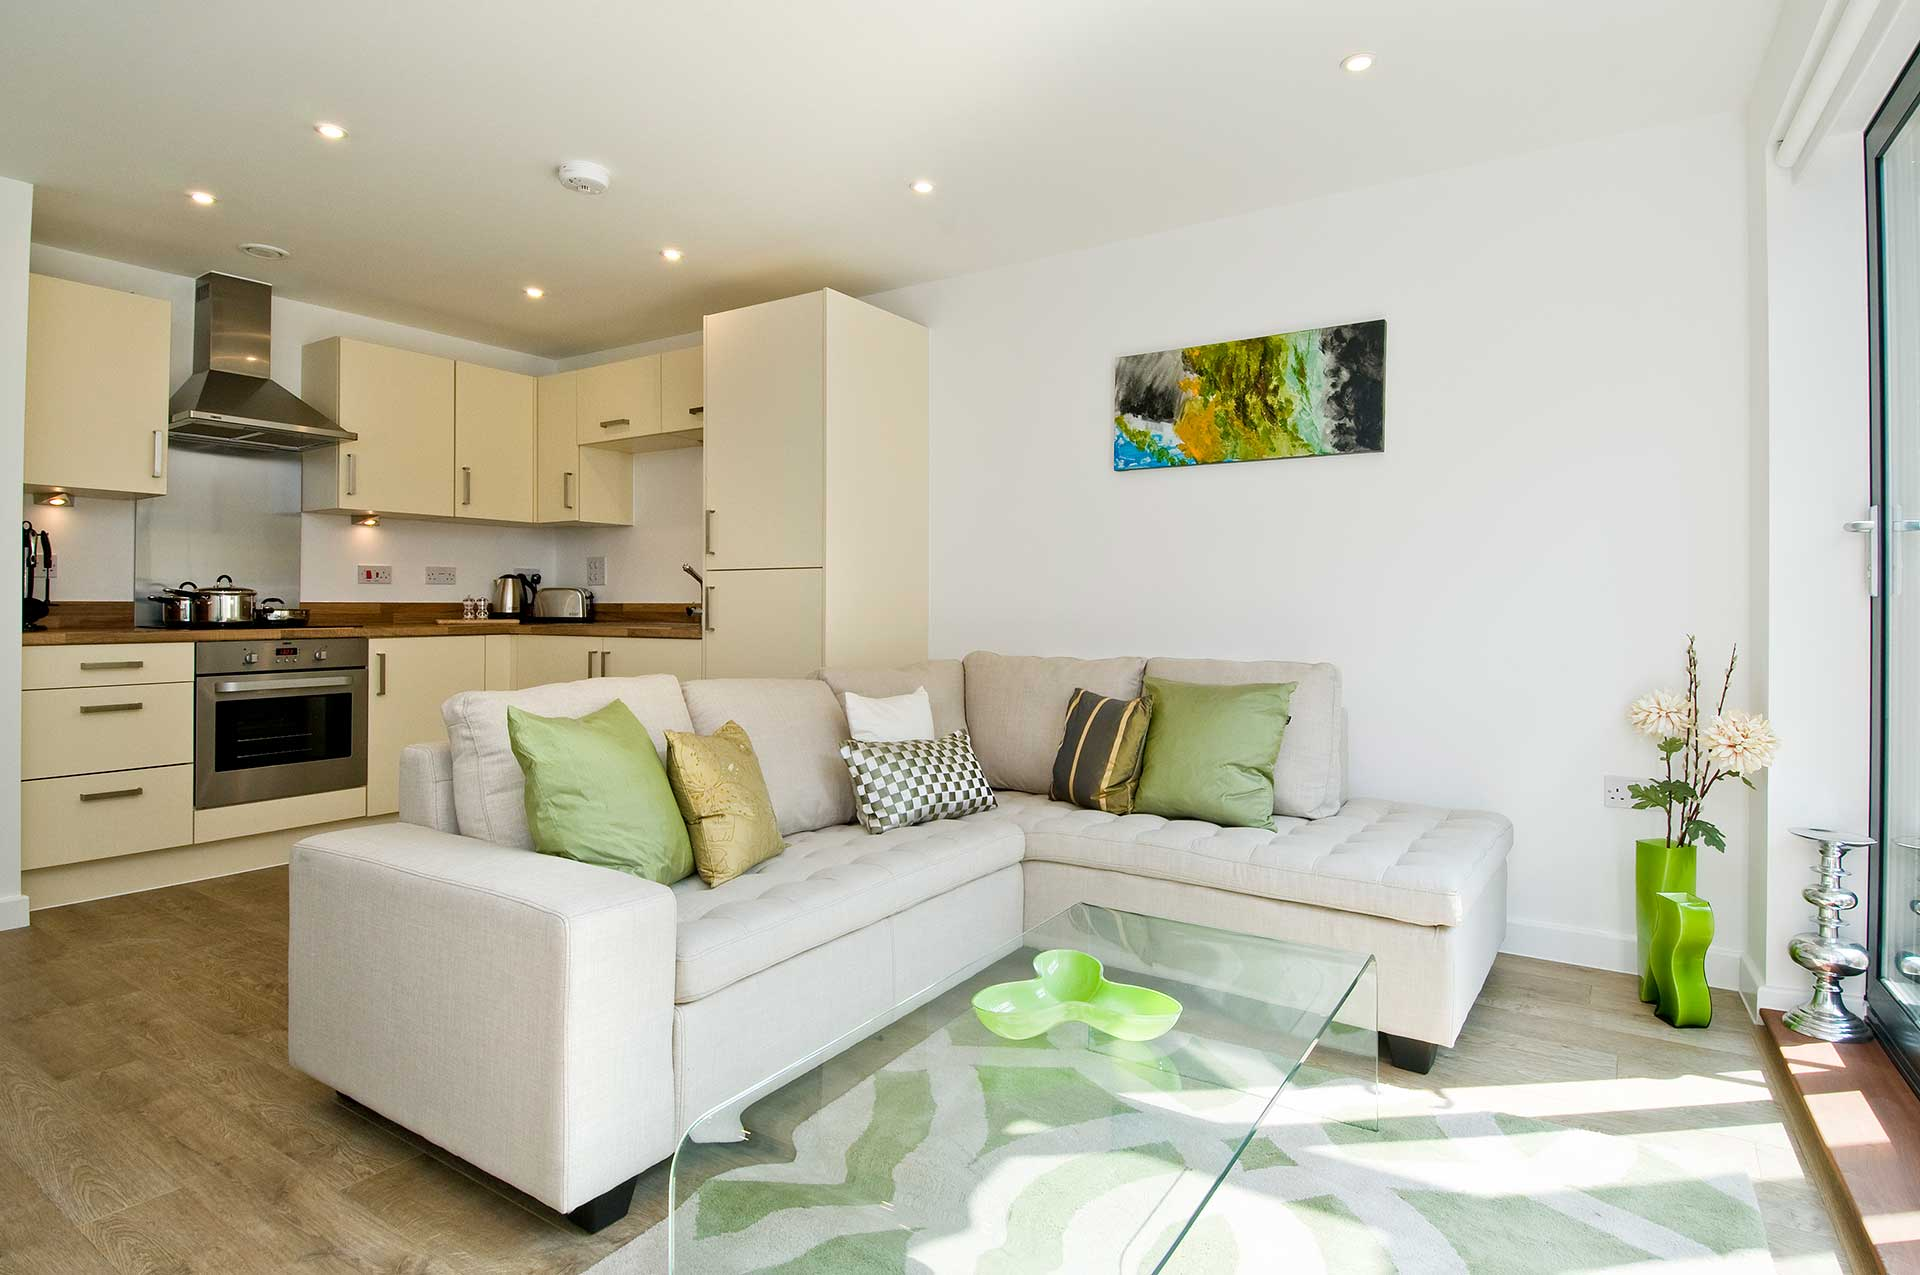 Furniture Packages for Rental Property